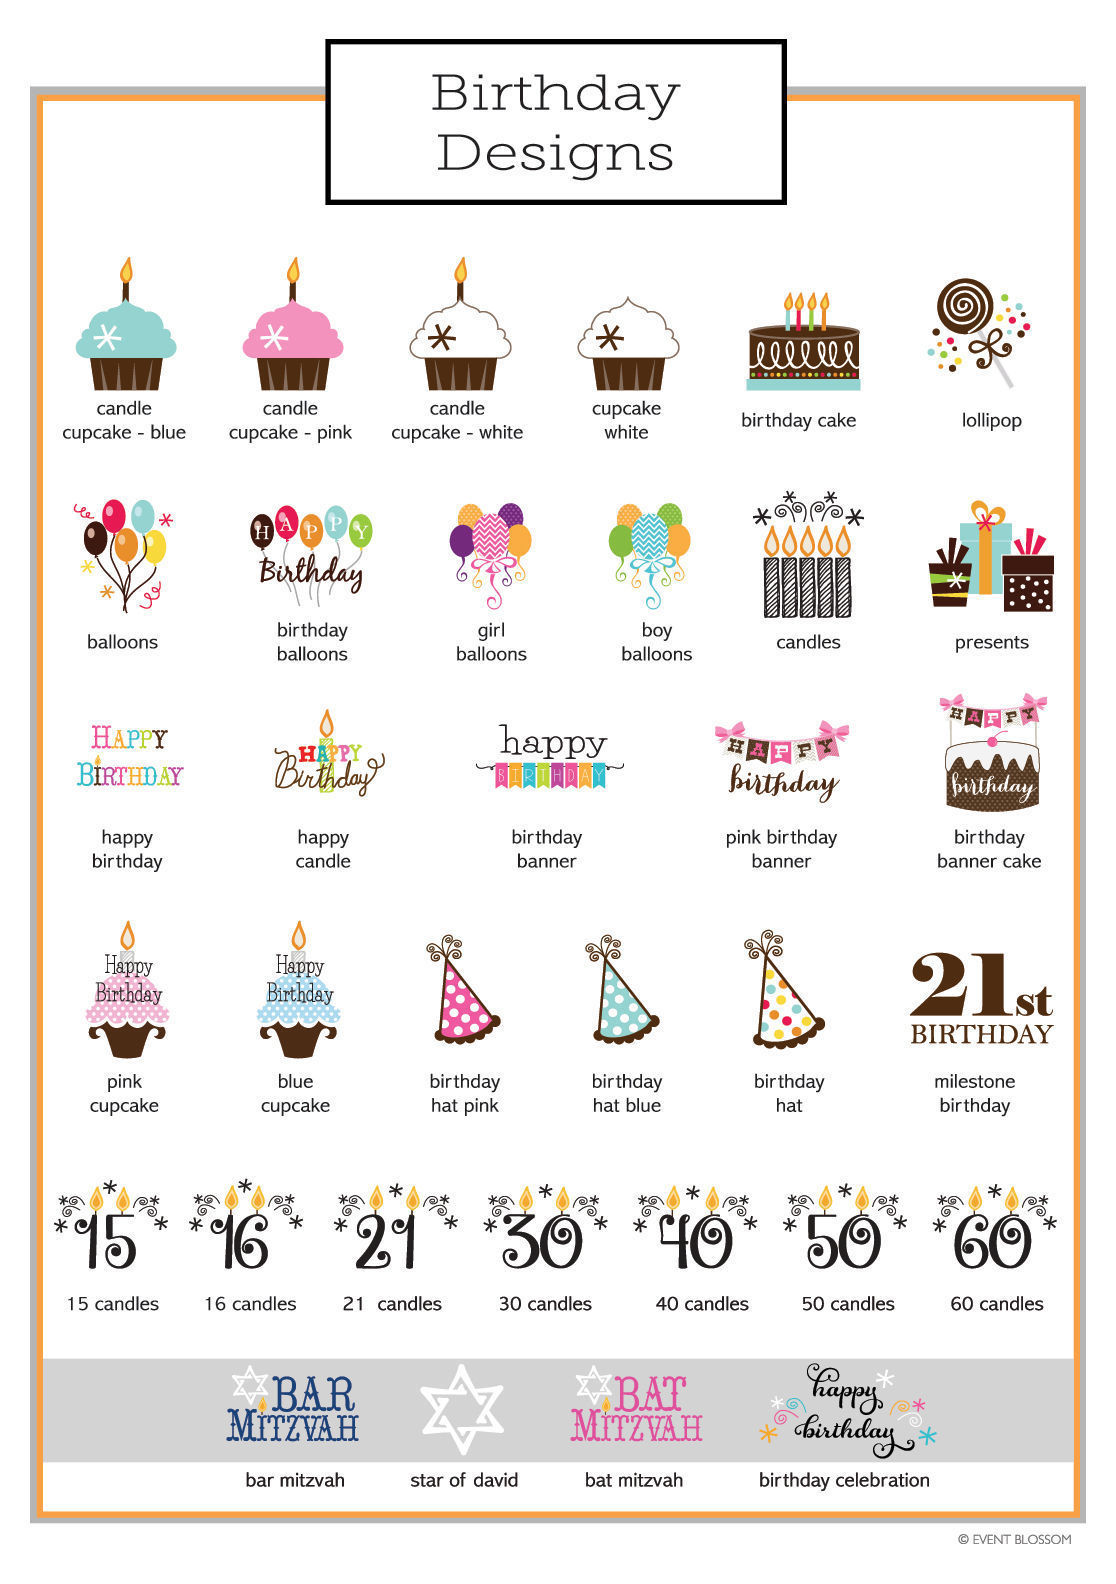 150 Personalized Themed Playing CARDS Birthday Bar Mitsvah or Party Favor